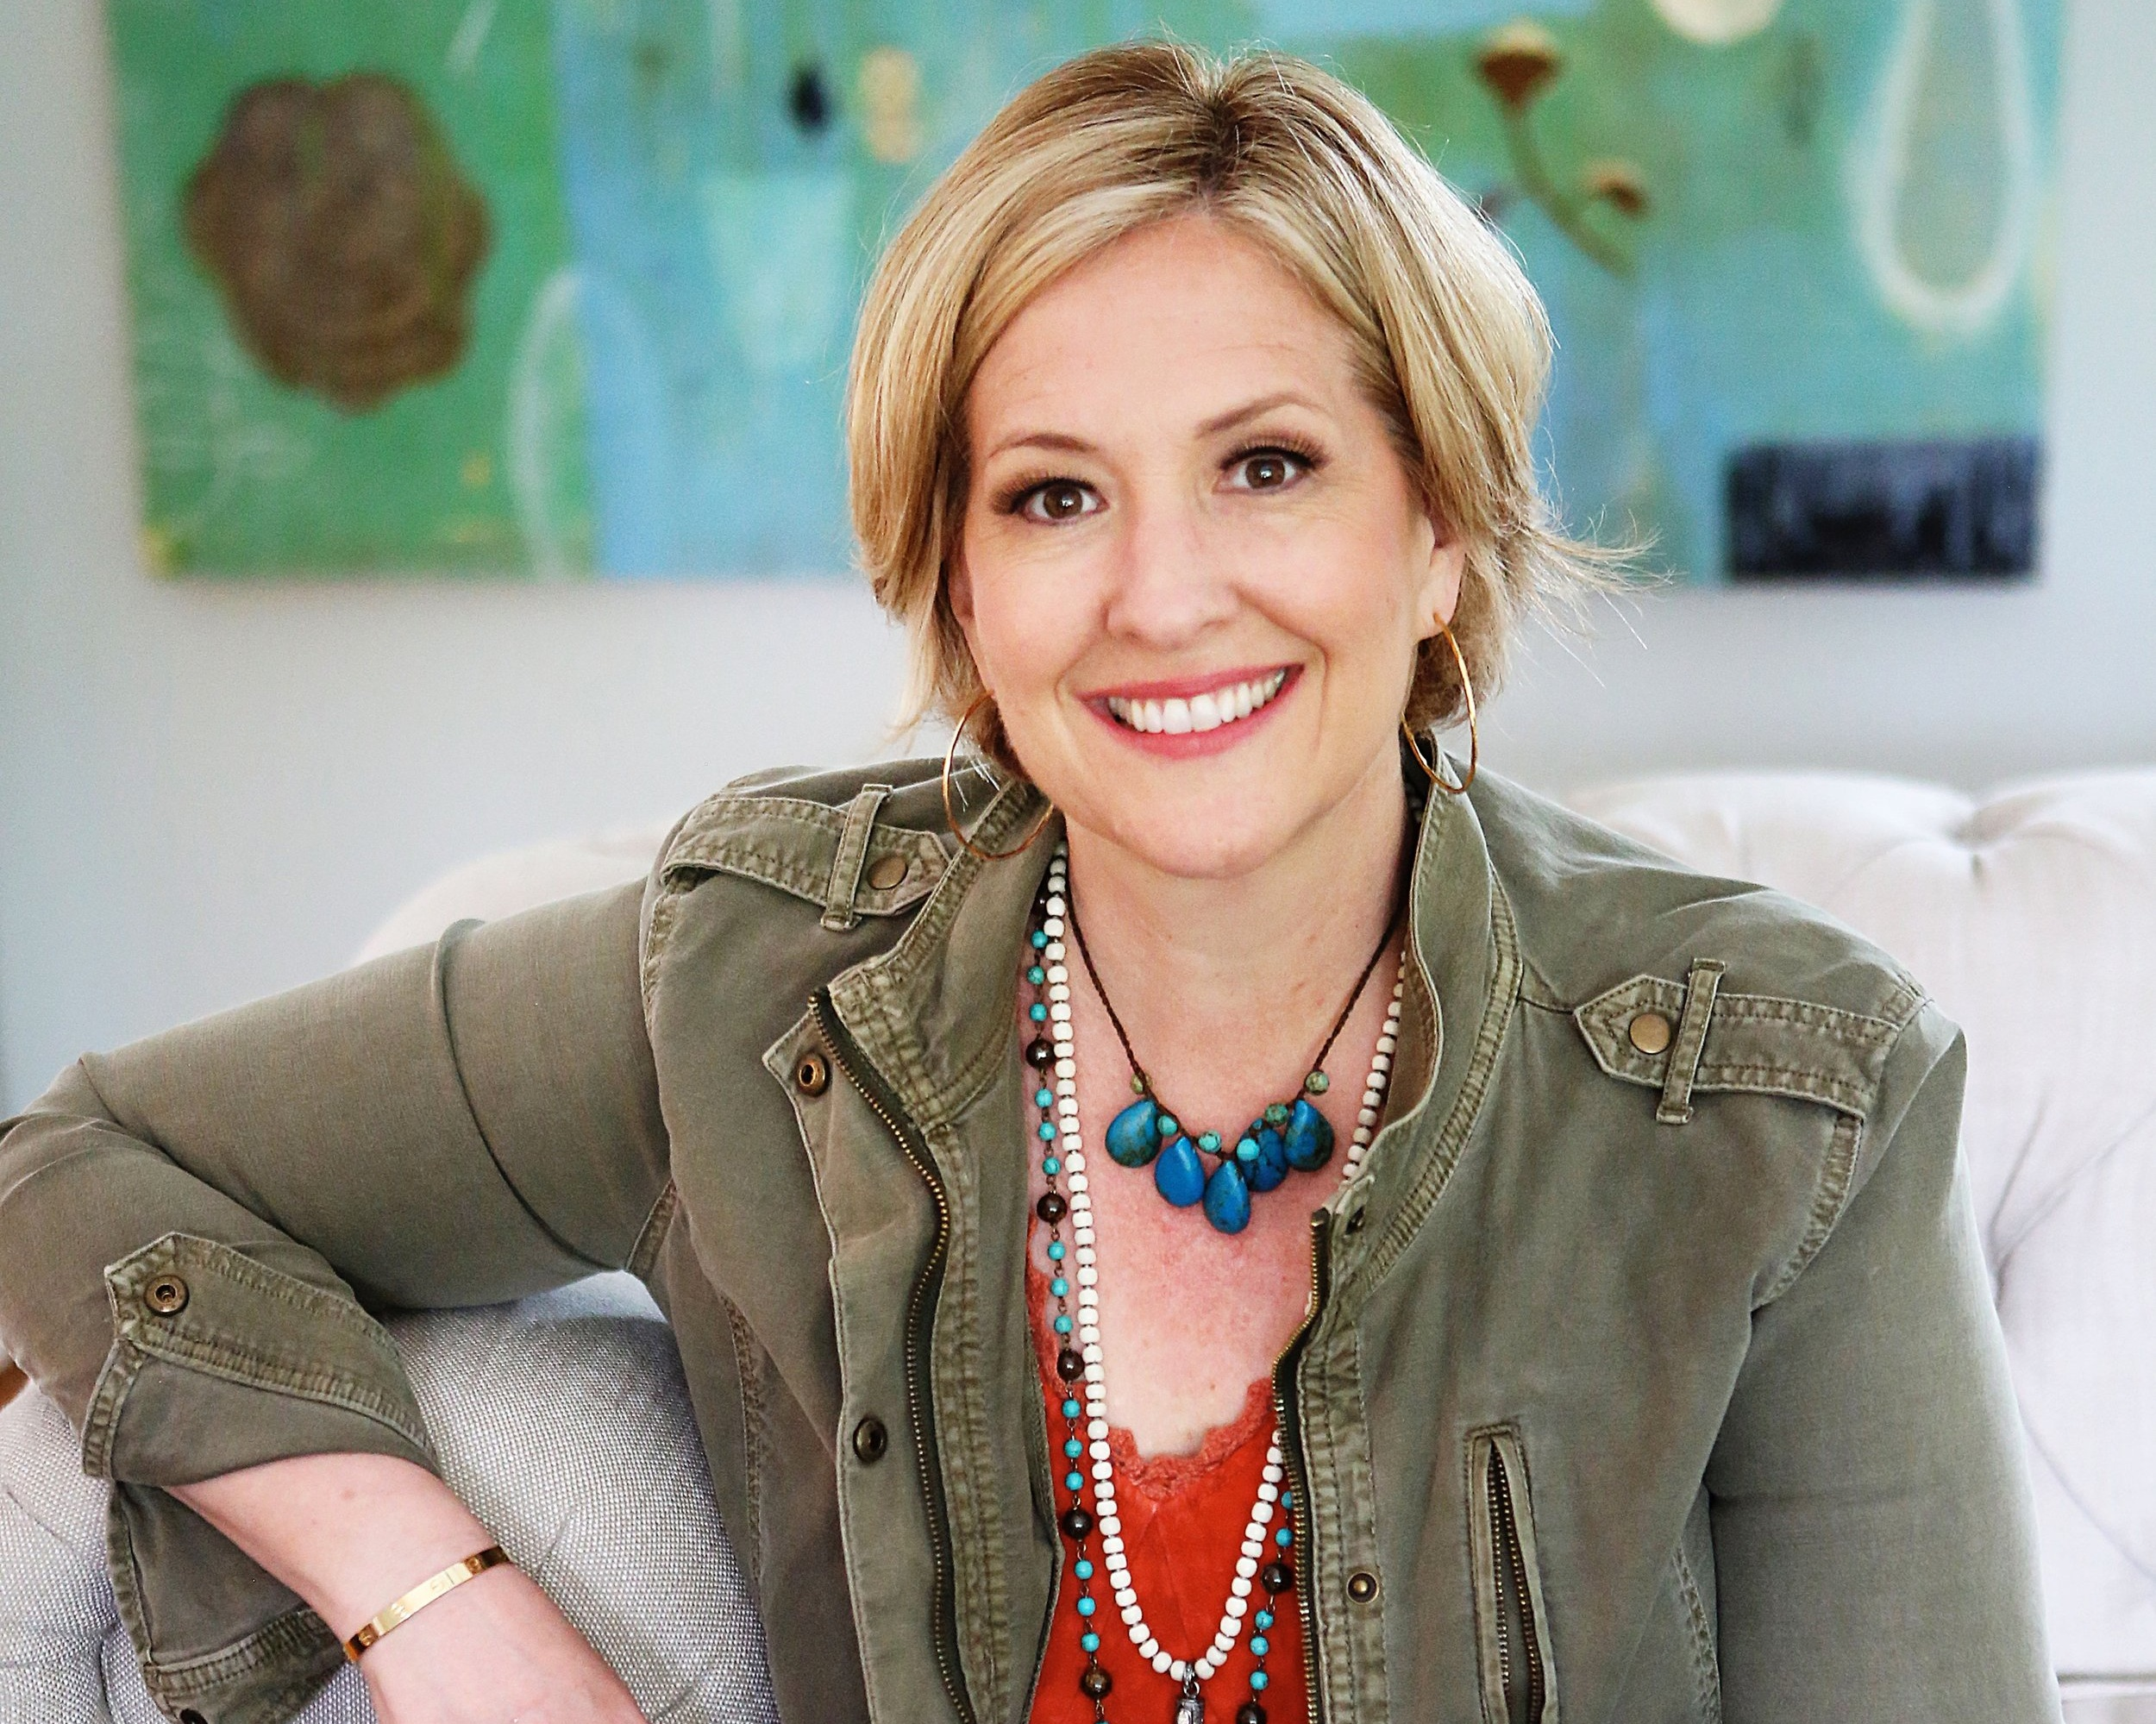 Brene-Brown-approved2-photo-by-Maile-Wilson.jpg